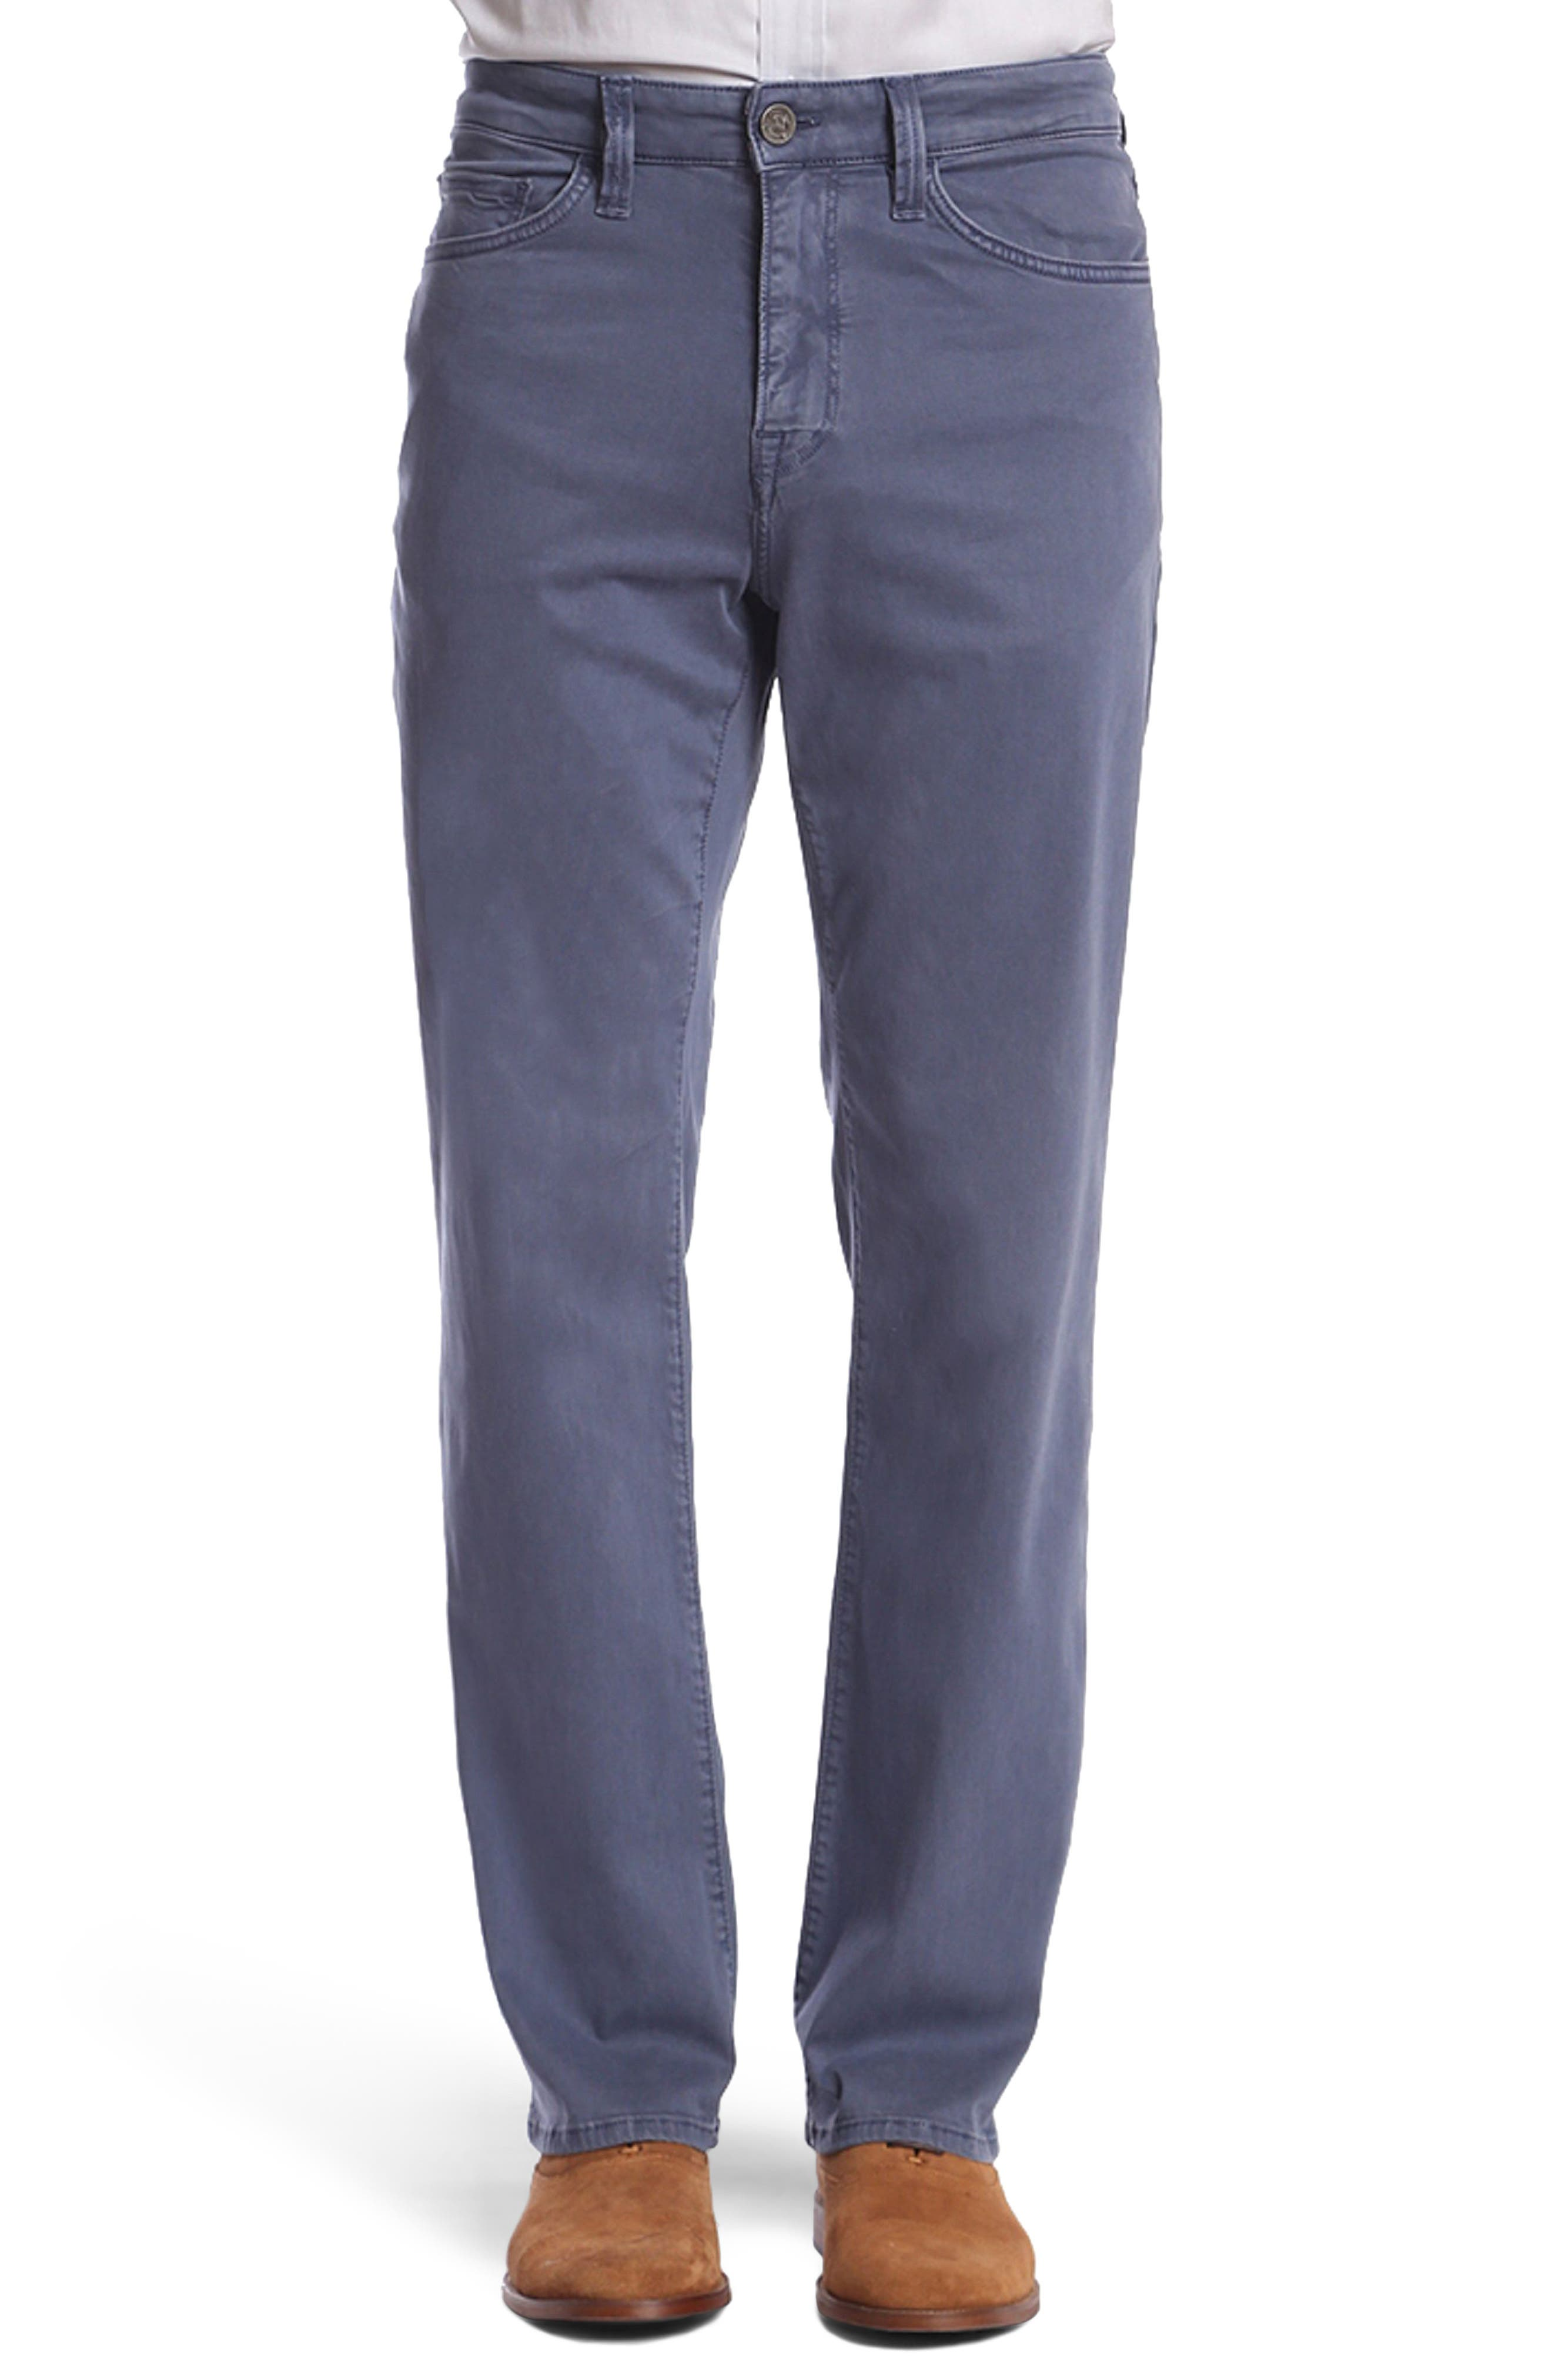 Charisma Relaxed Fit Jeans,                             Main thumbnail 1, color,                             450